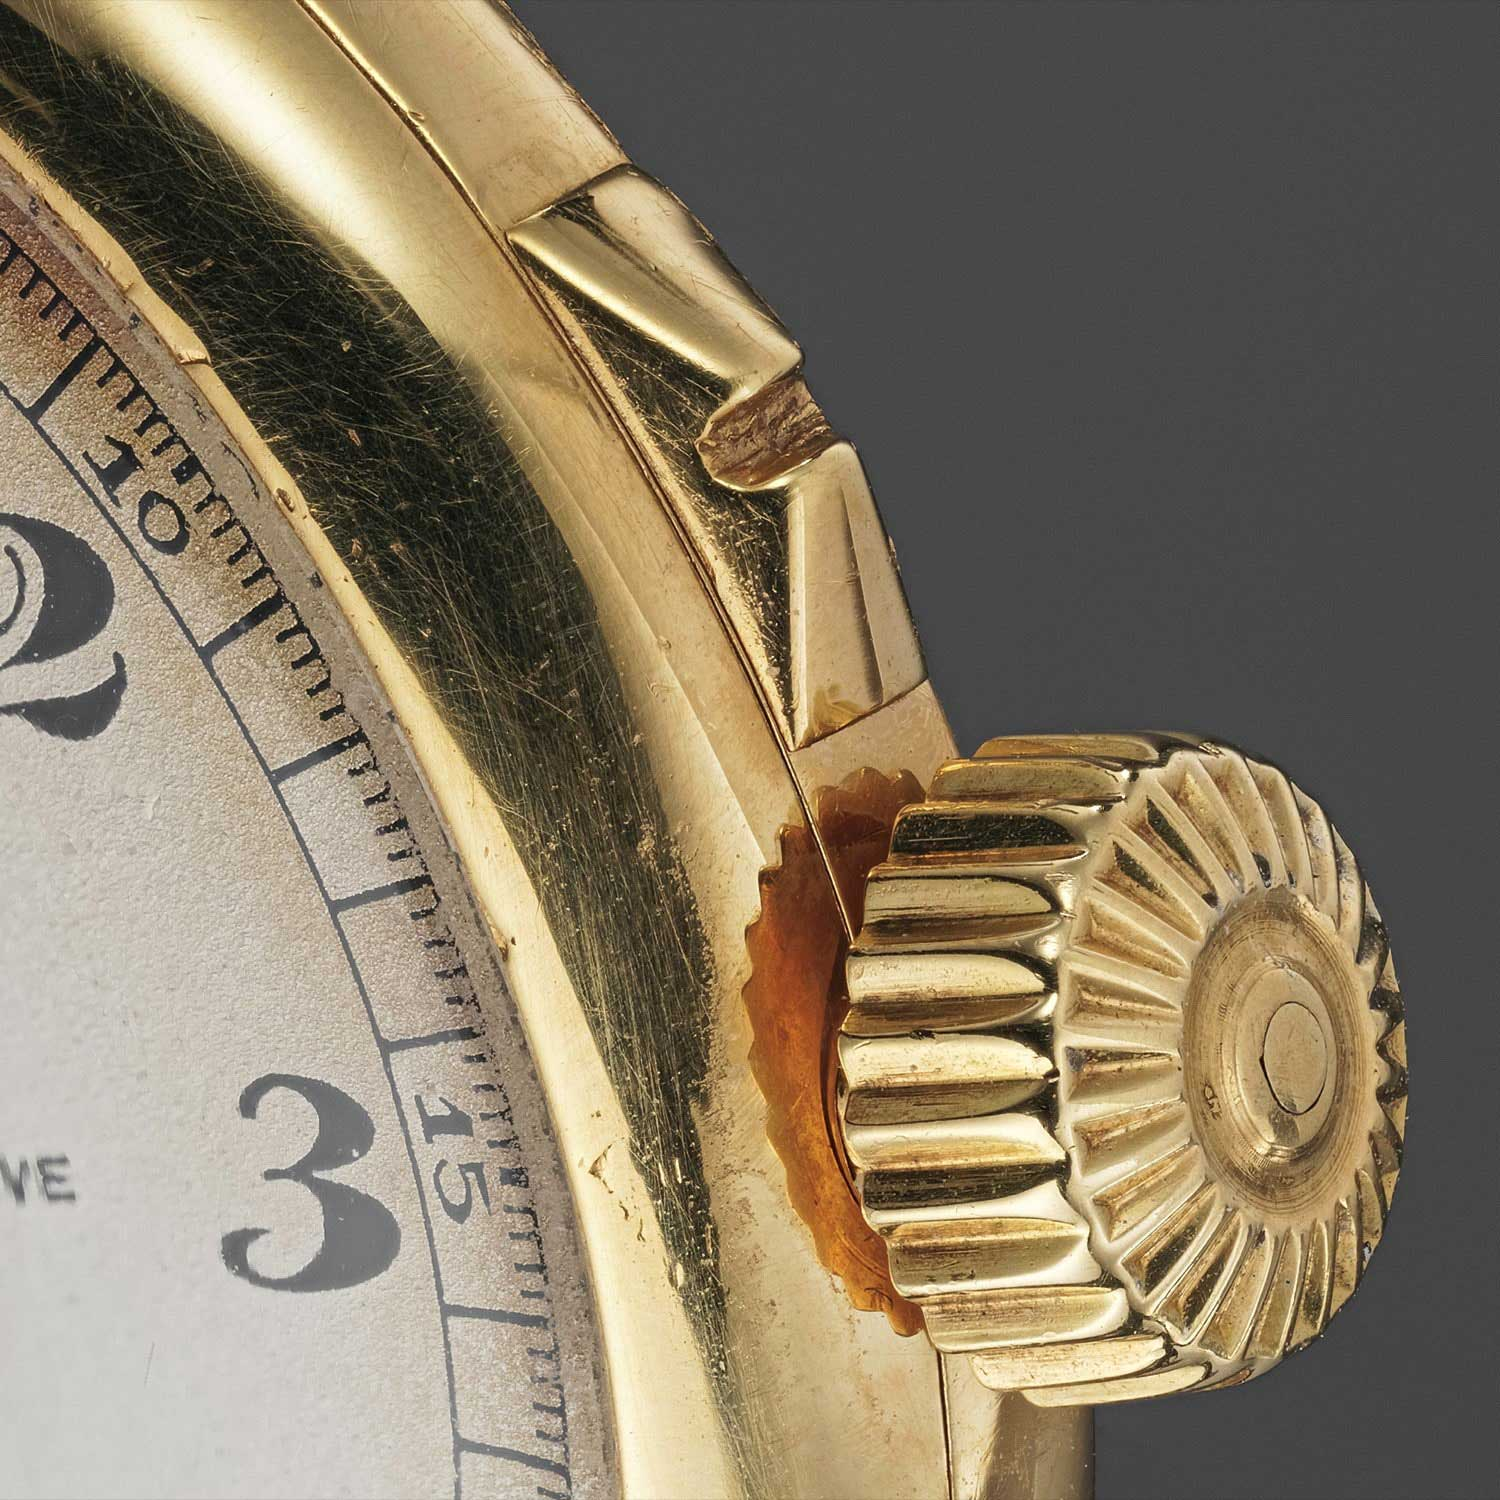 1924 Patek Philippe single pusher chronograph wristwatch with vertical registers and officer case (Image: phillipswatches.com)